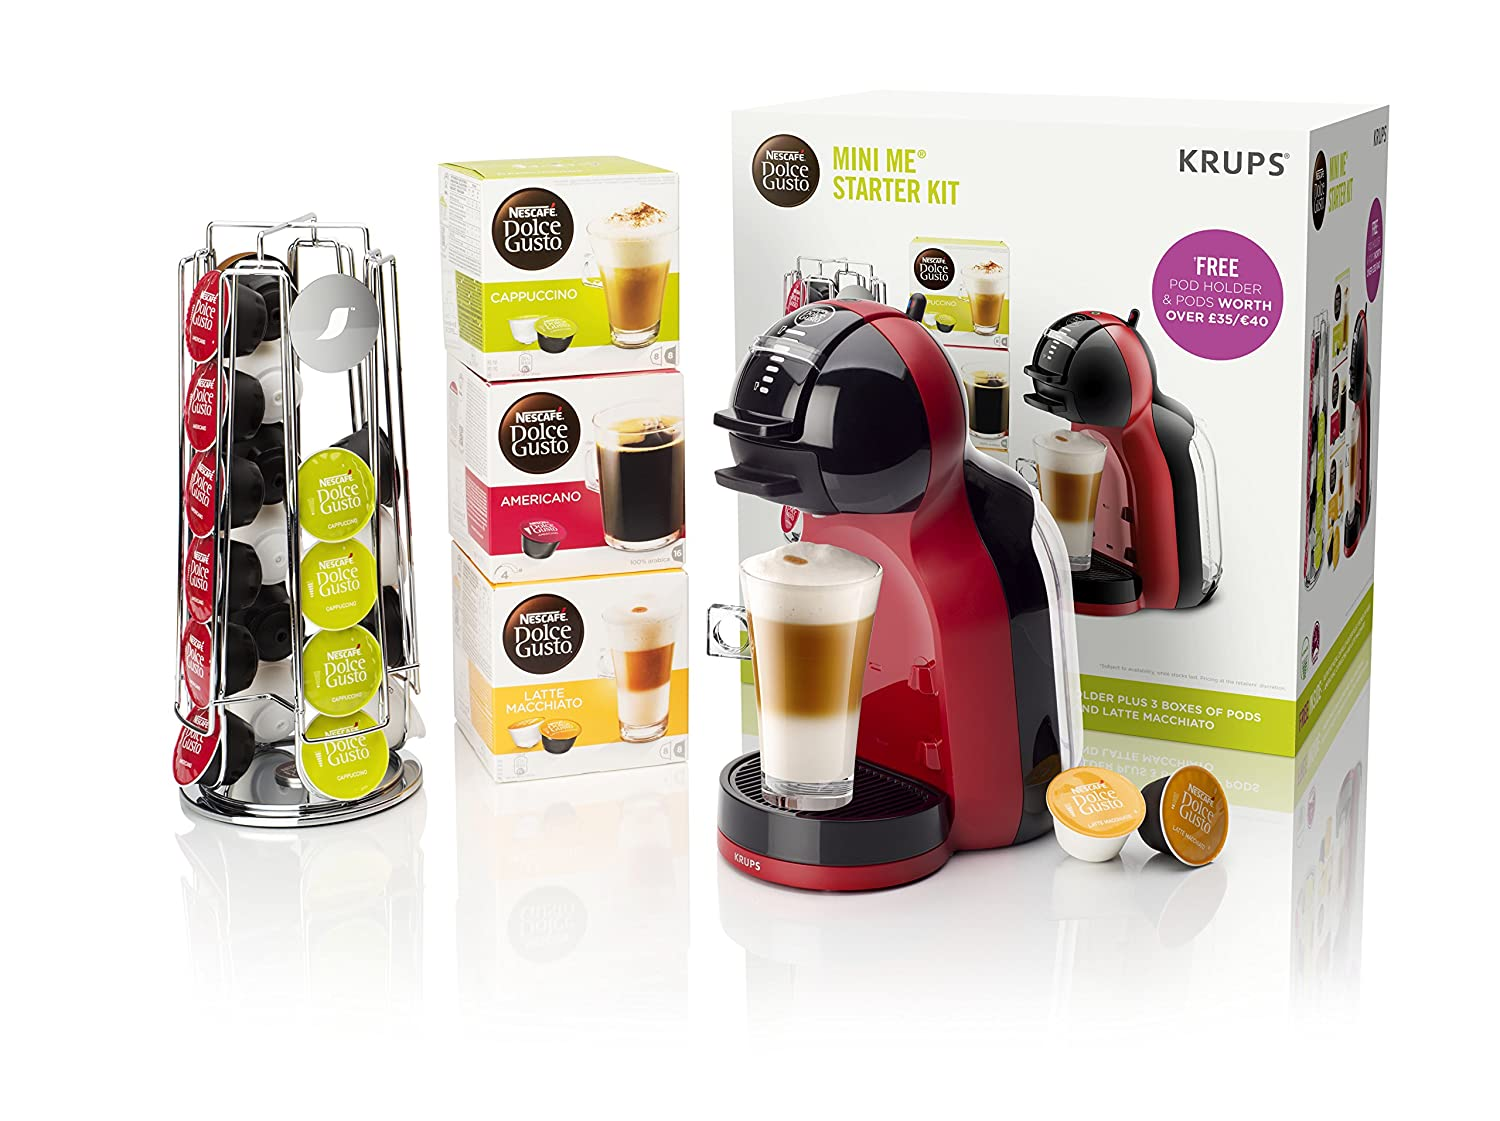 Krups KP120BUN NESCAFe Dolce Gusto Mini Me Coffee Machine Starter Kit, Red Black eBay